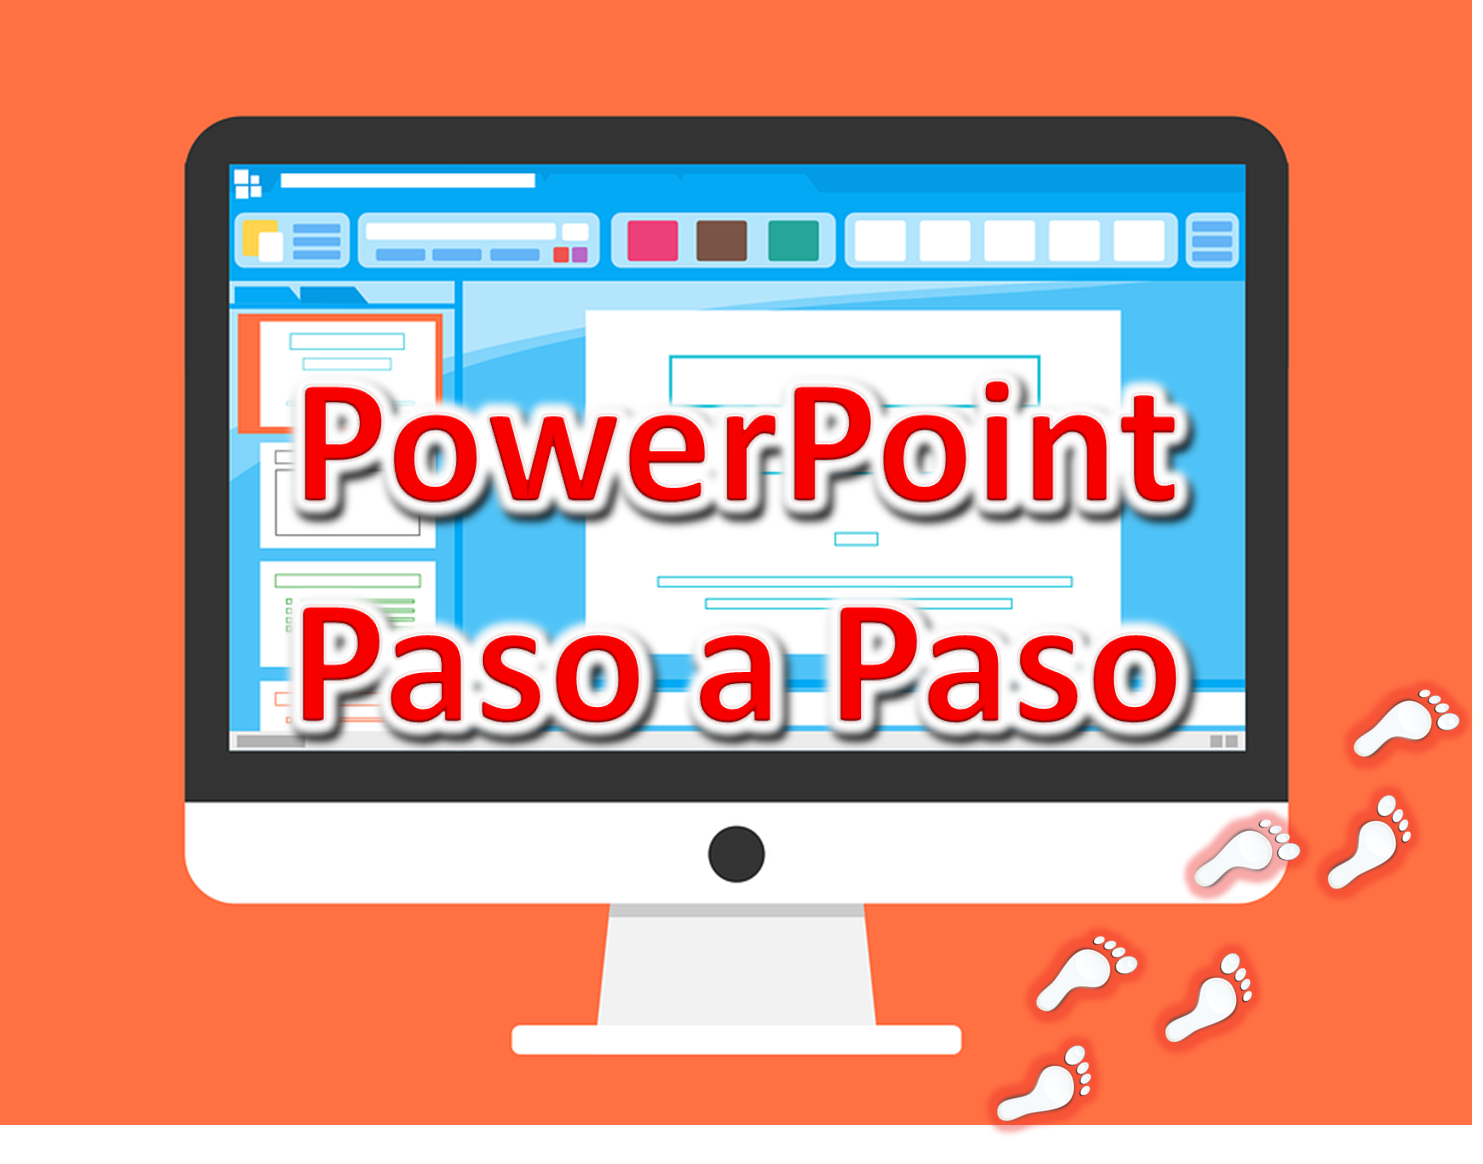 Power point curso gratis paso a paso 2018